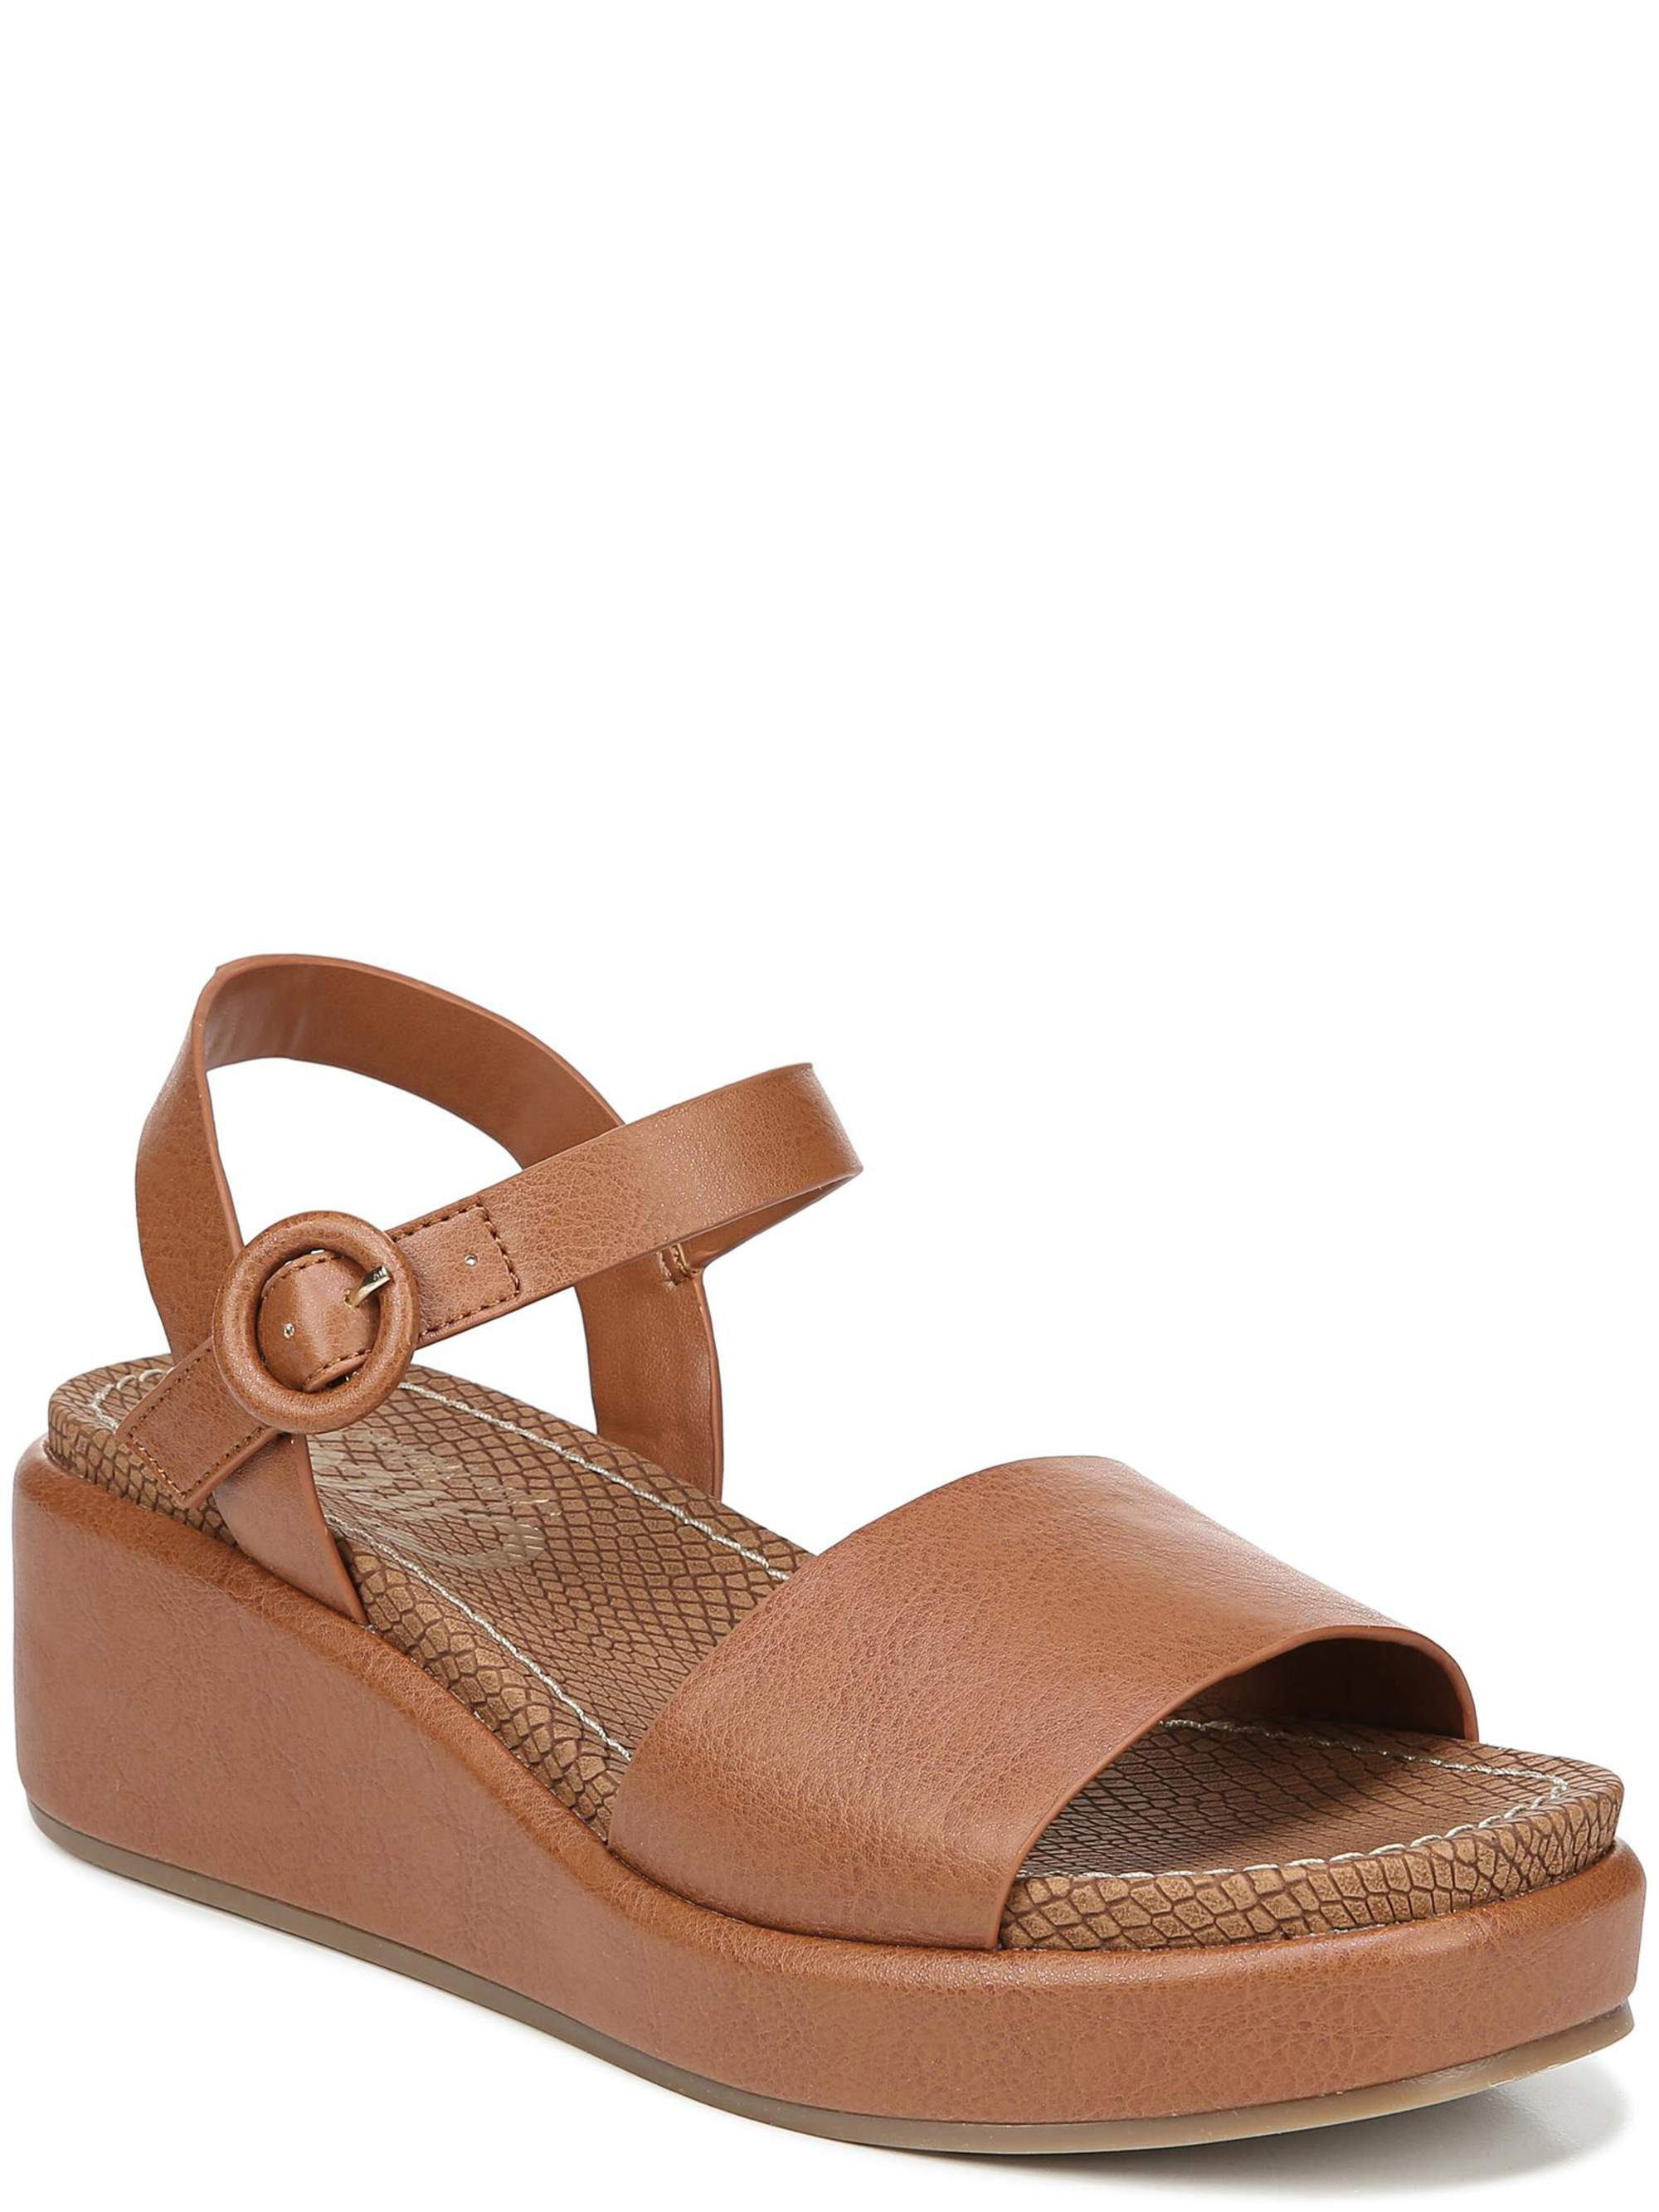 Women's Circus by Sam Edelman Sarah Ankle Strap Sandals